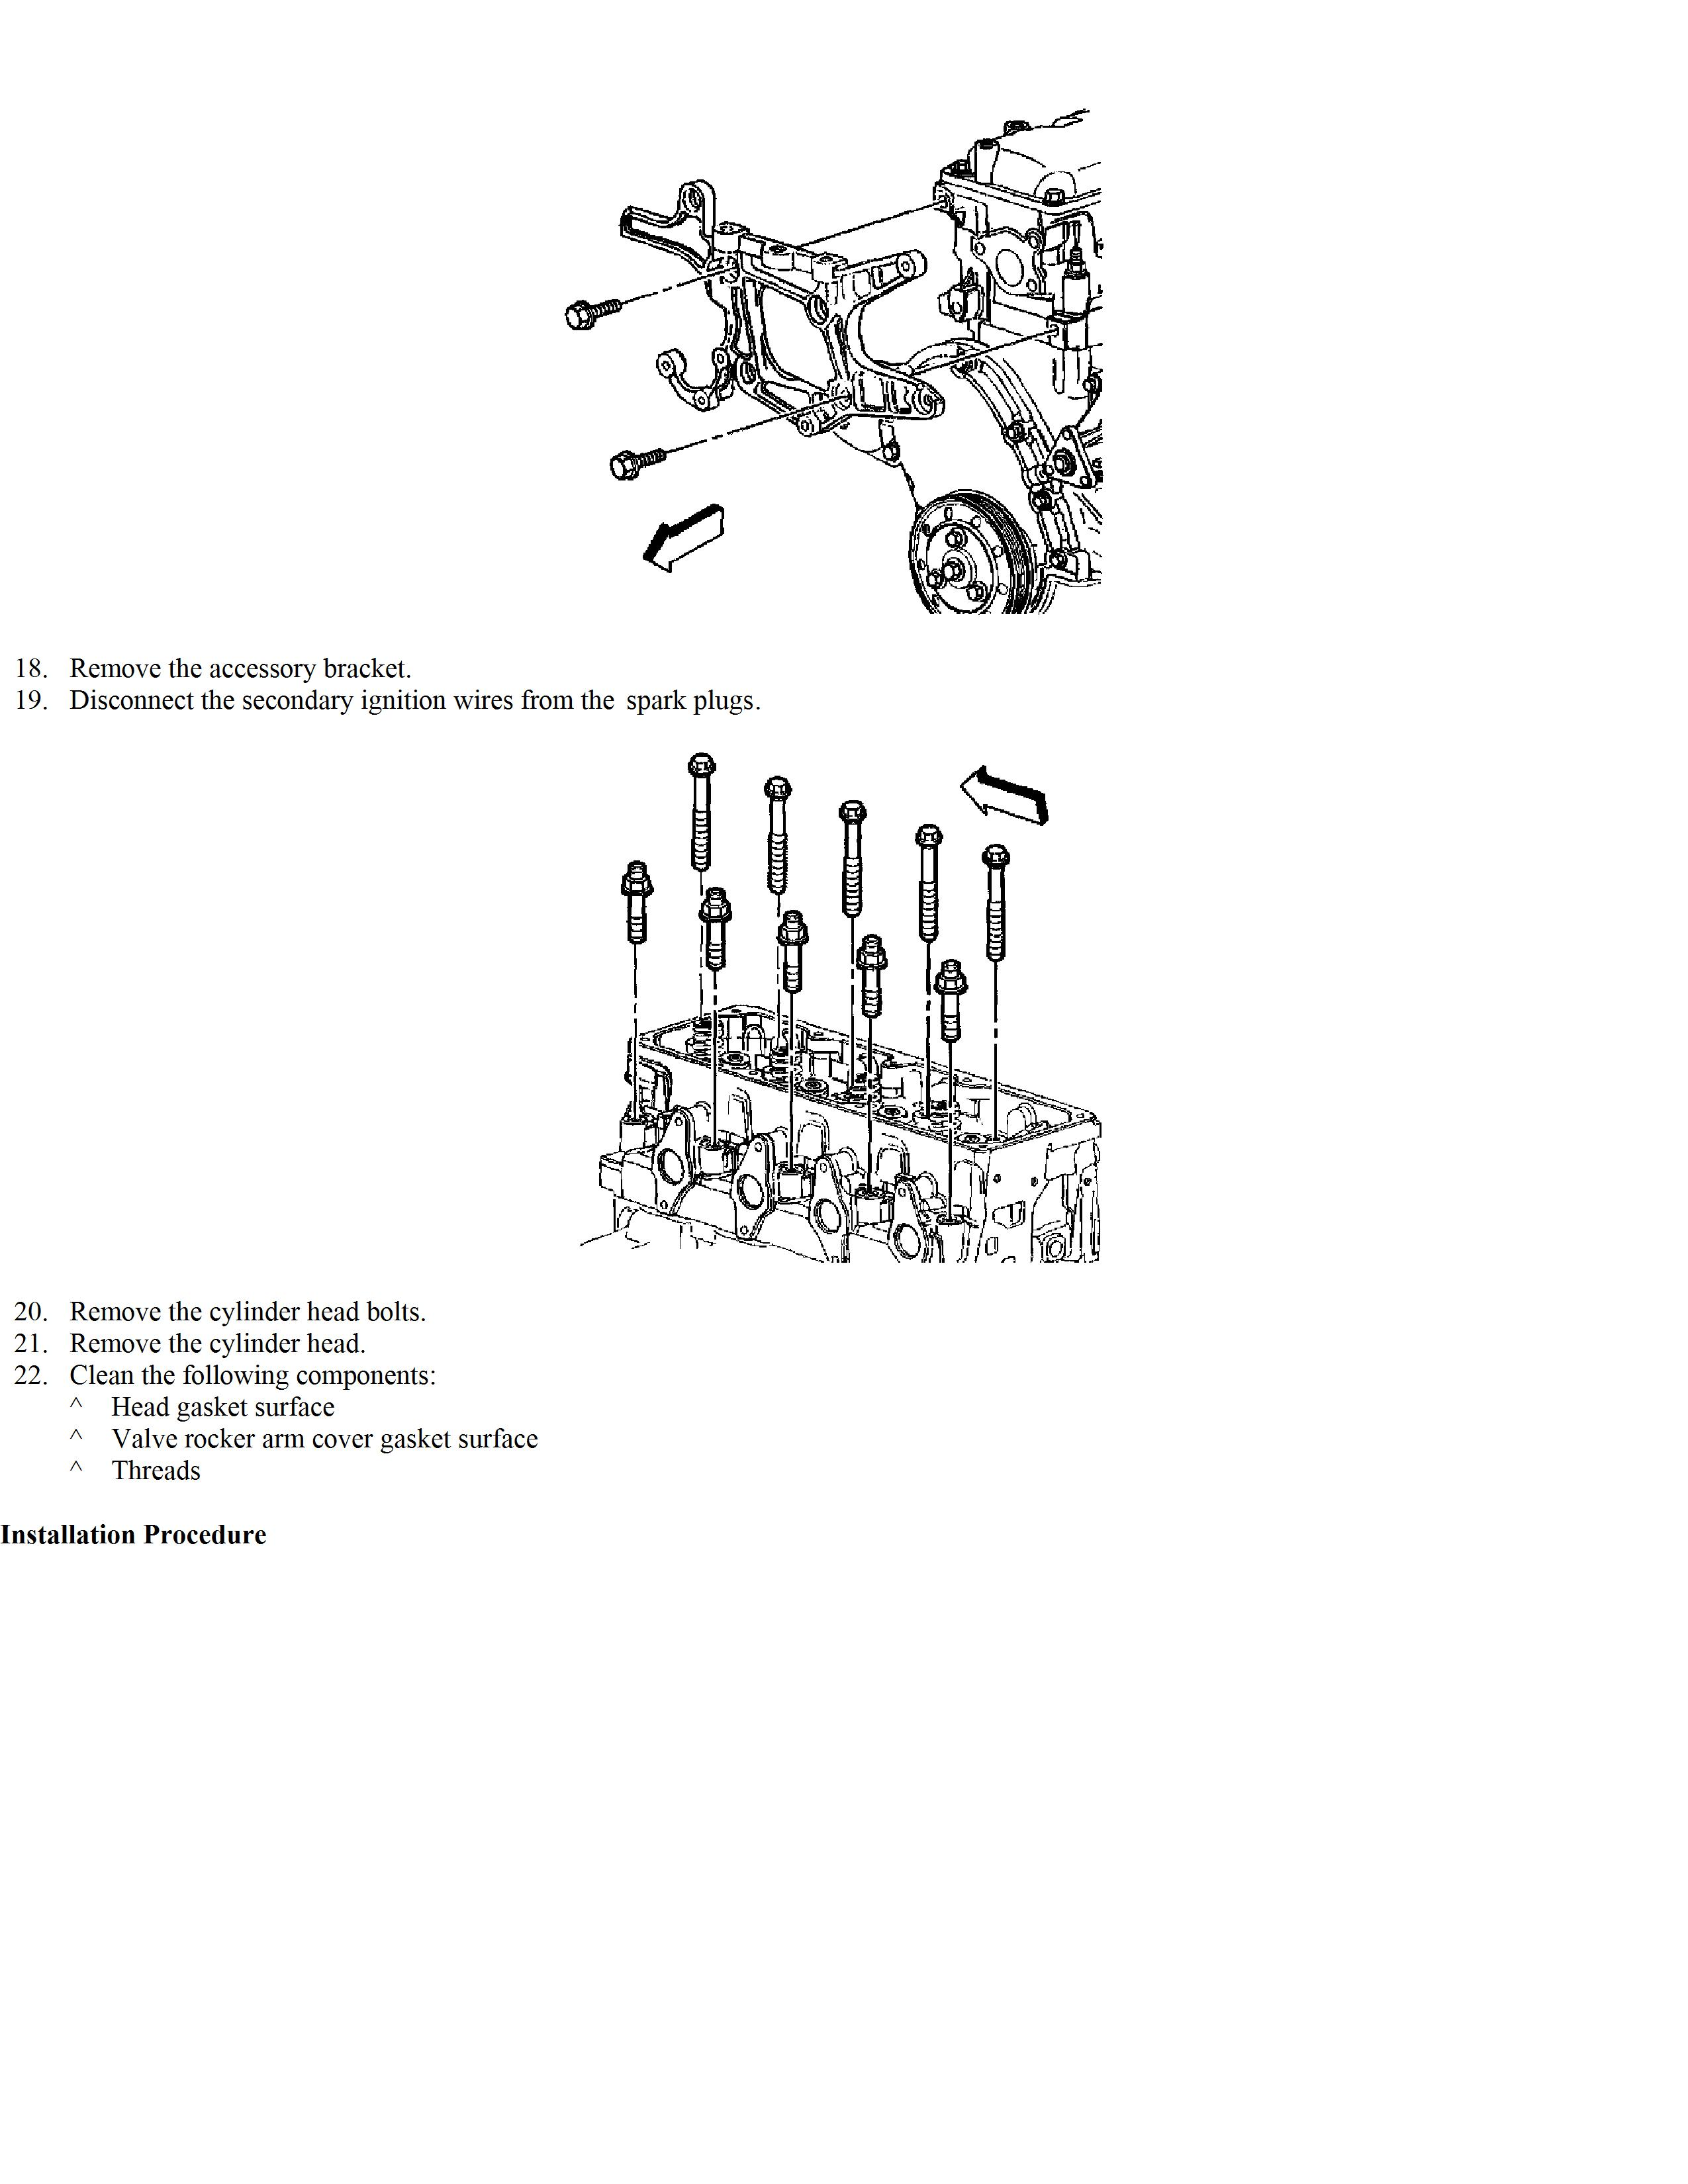 How Do I Remove The Head Gasket From My 2002 Chevy Cavalier